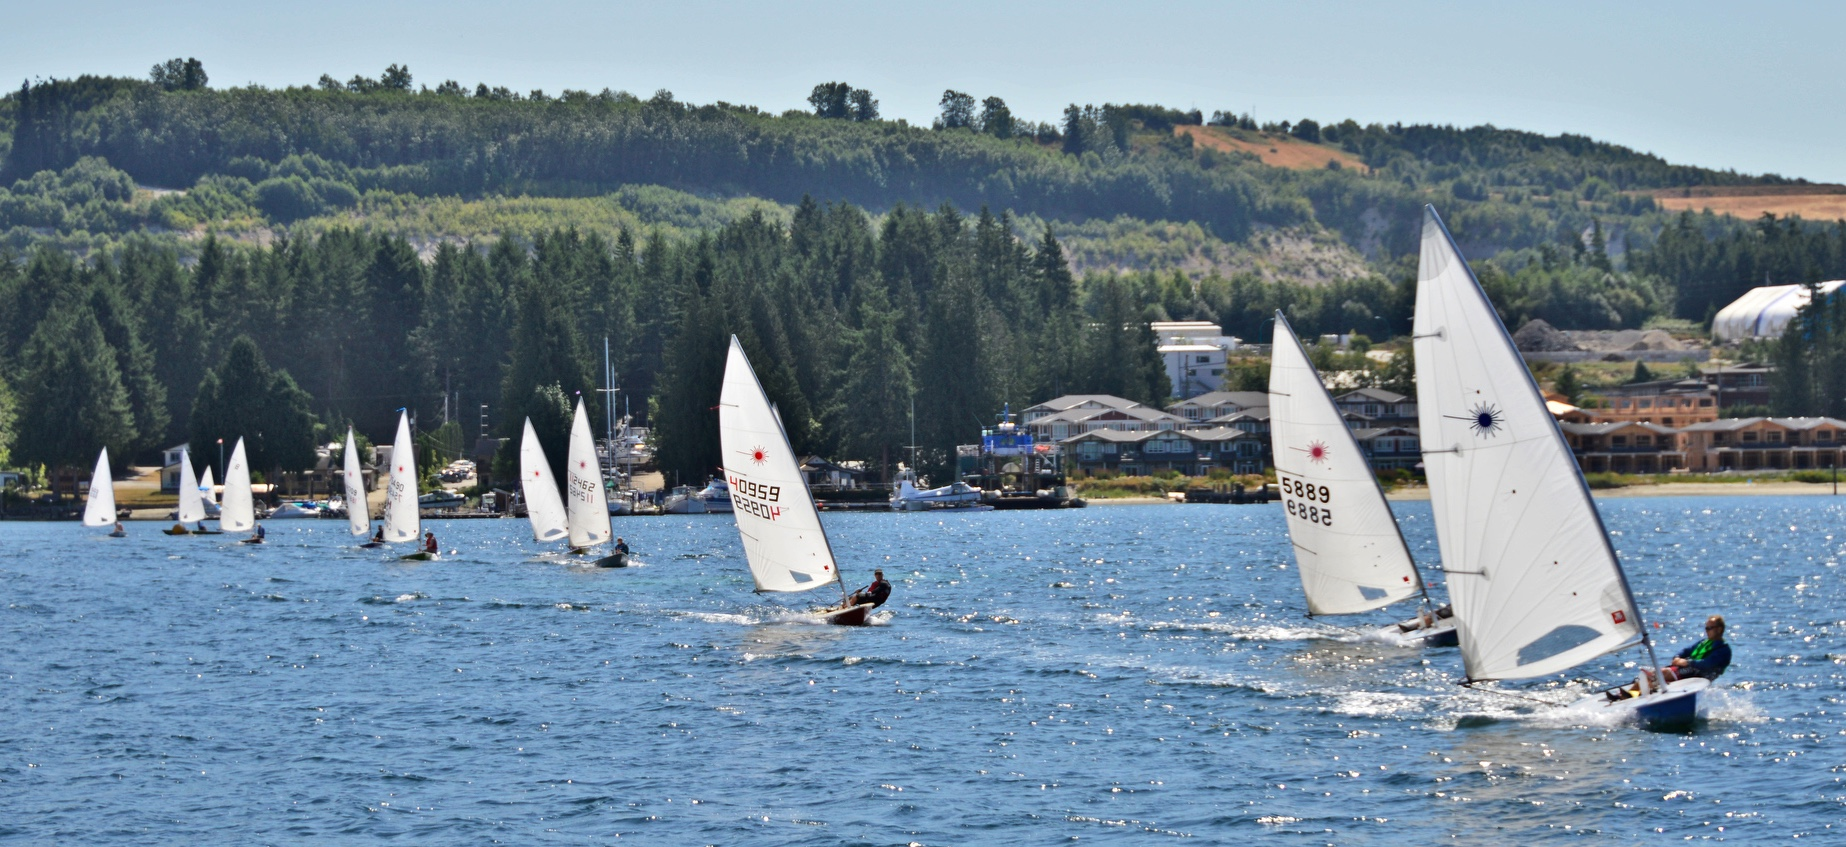 Sailors lead out from the Marina for the start of the 6th Annual Poise Cove Regatta July 16th, 2017